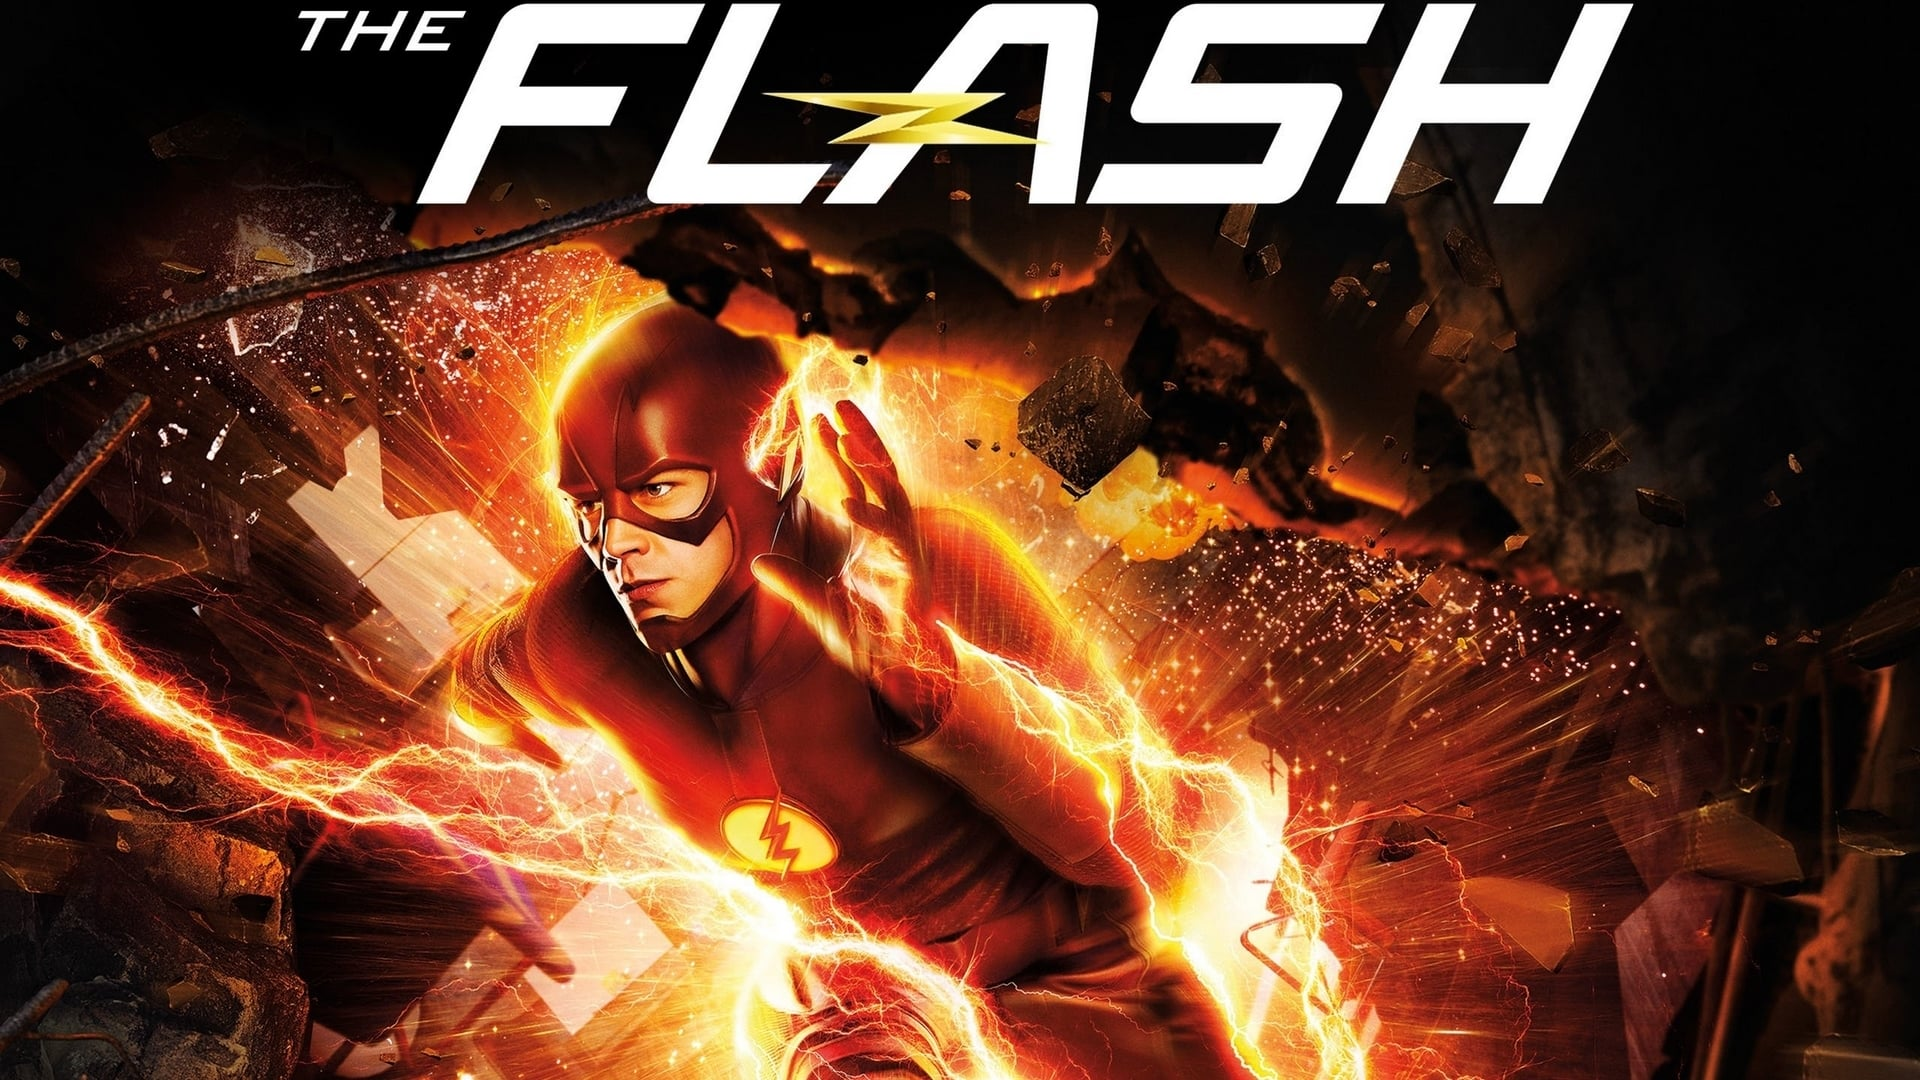 The Flash (1970)